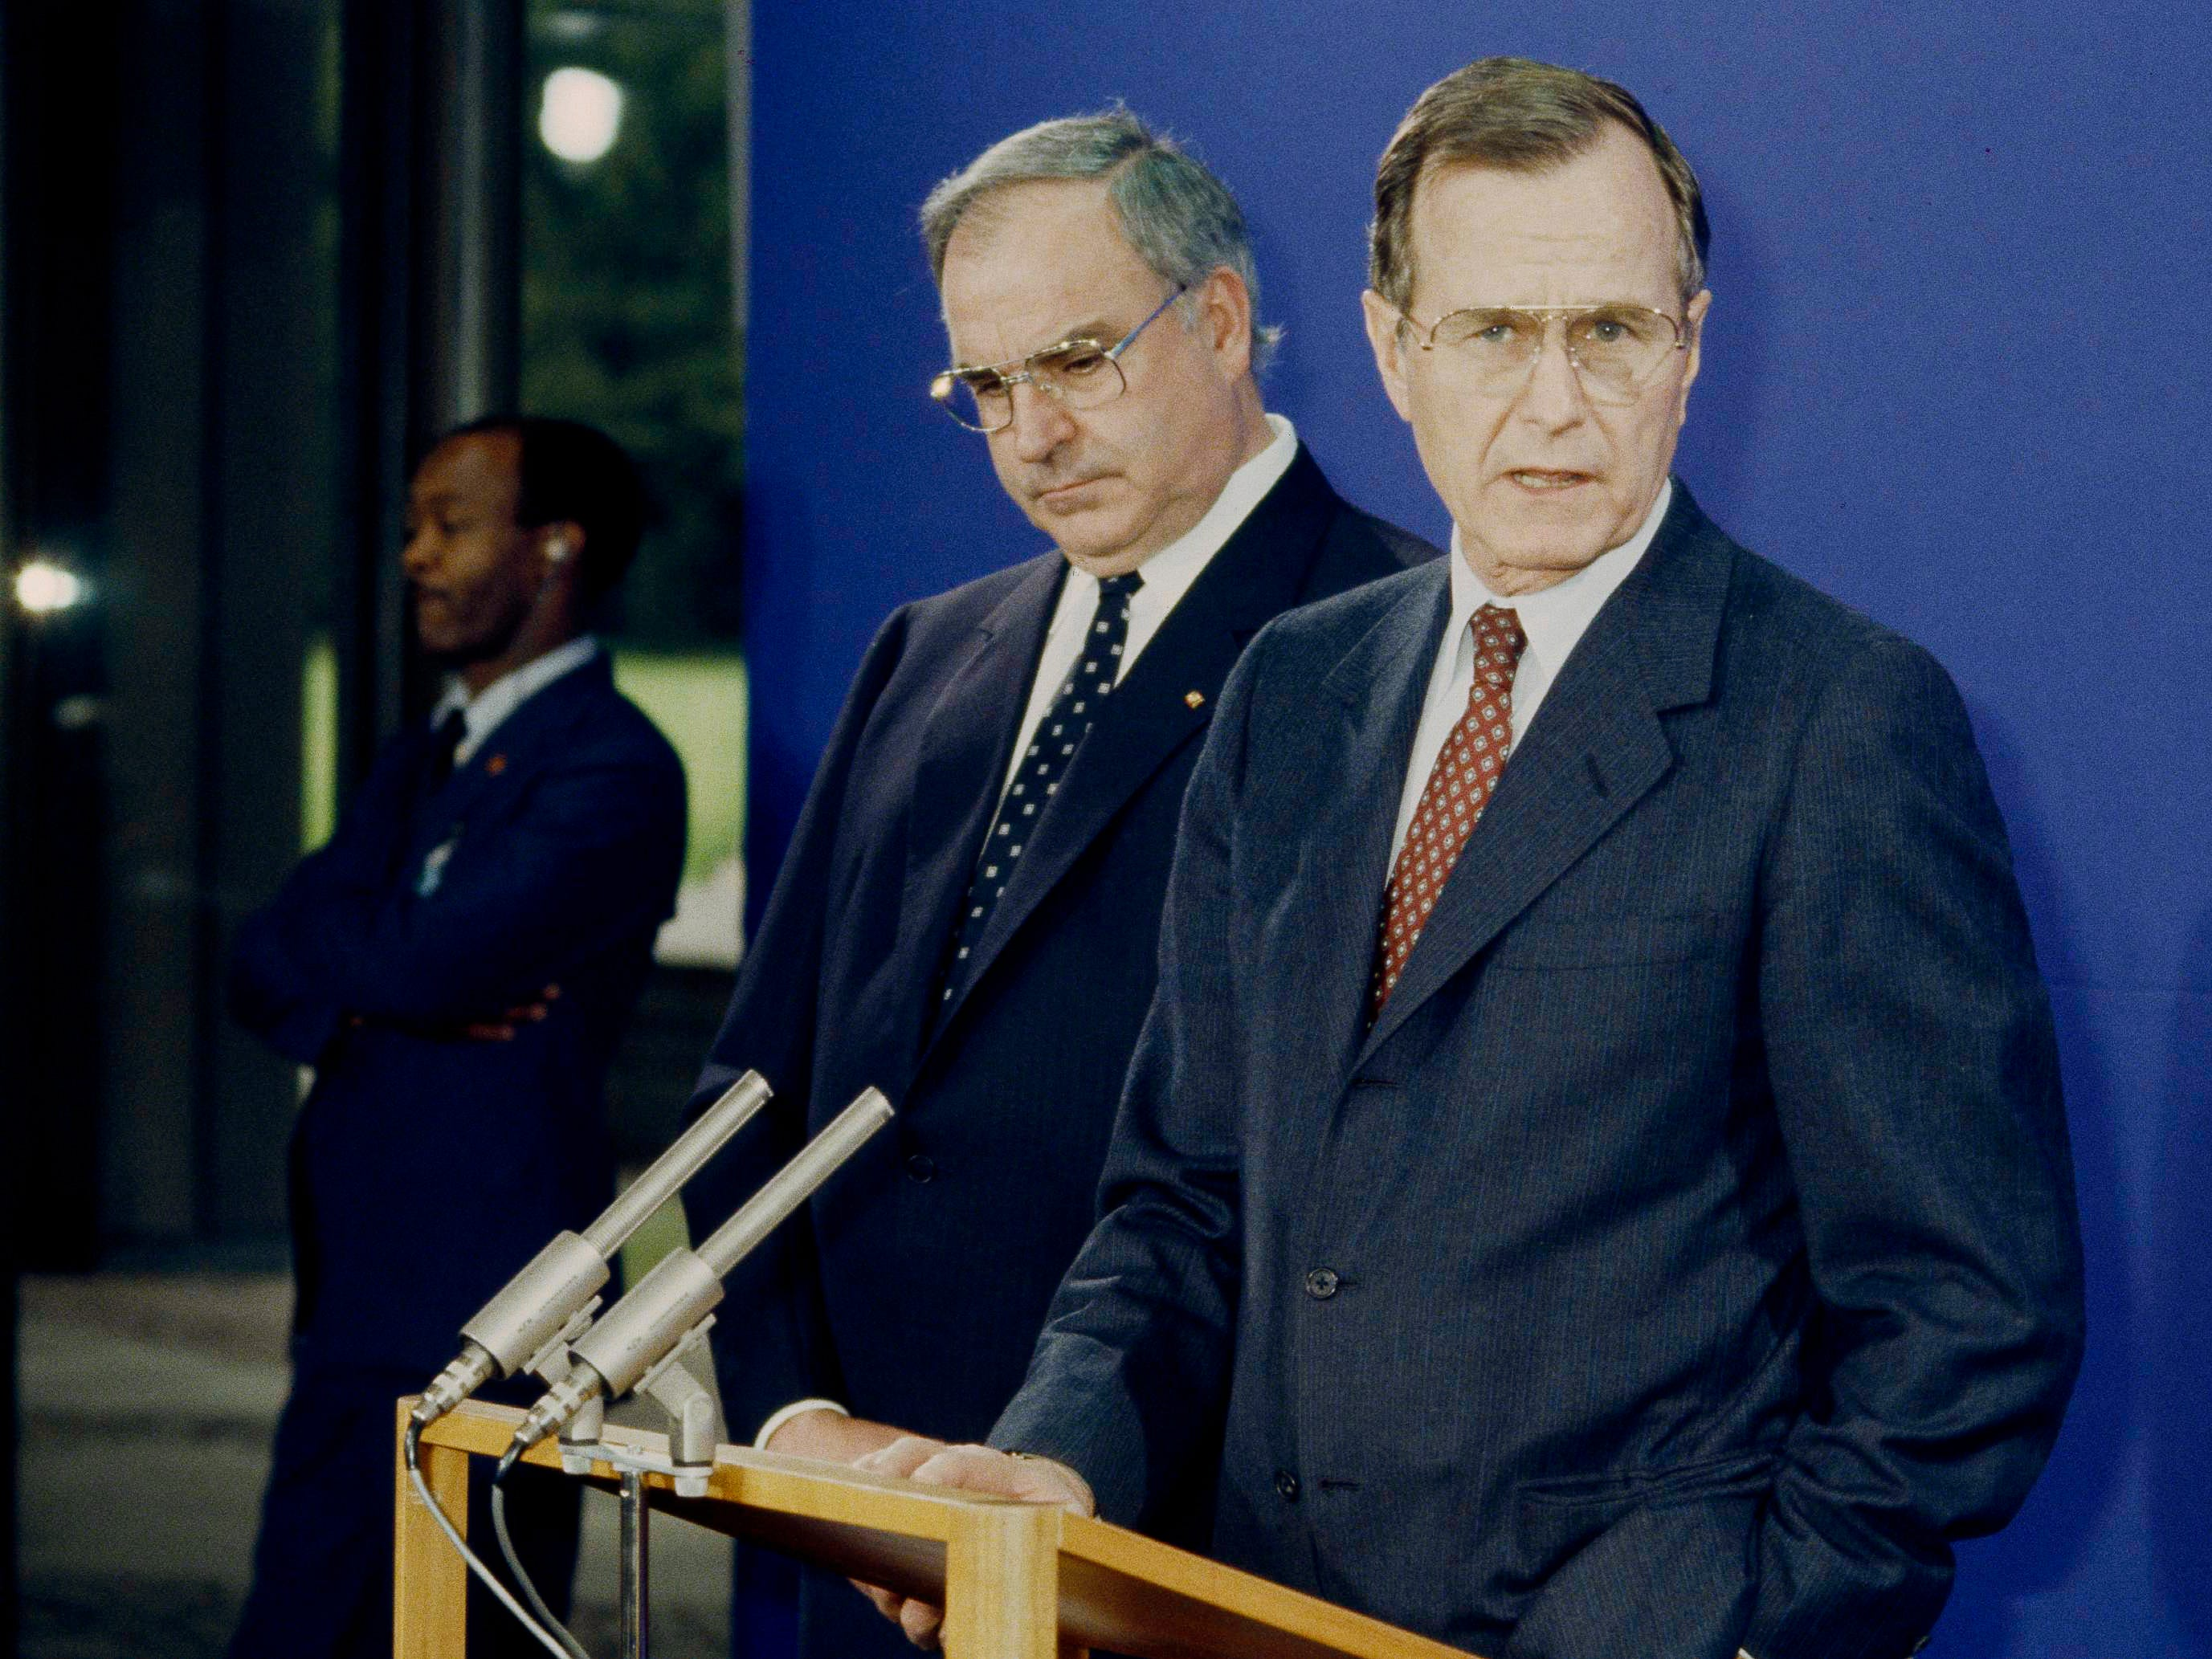 U.S. Vice President George Bush is pictured with West German Chancellor Helmut Kohl during a press conference in Bonn, Germany, Jan. 31, 1983. (AP Photo/Roberto Pfeil)